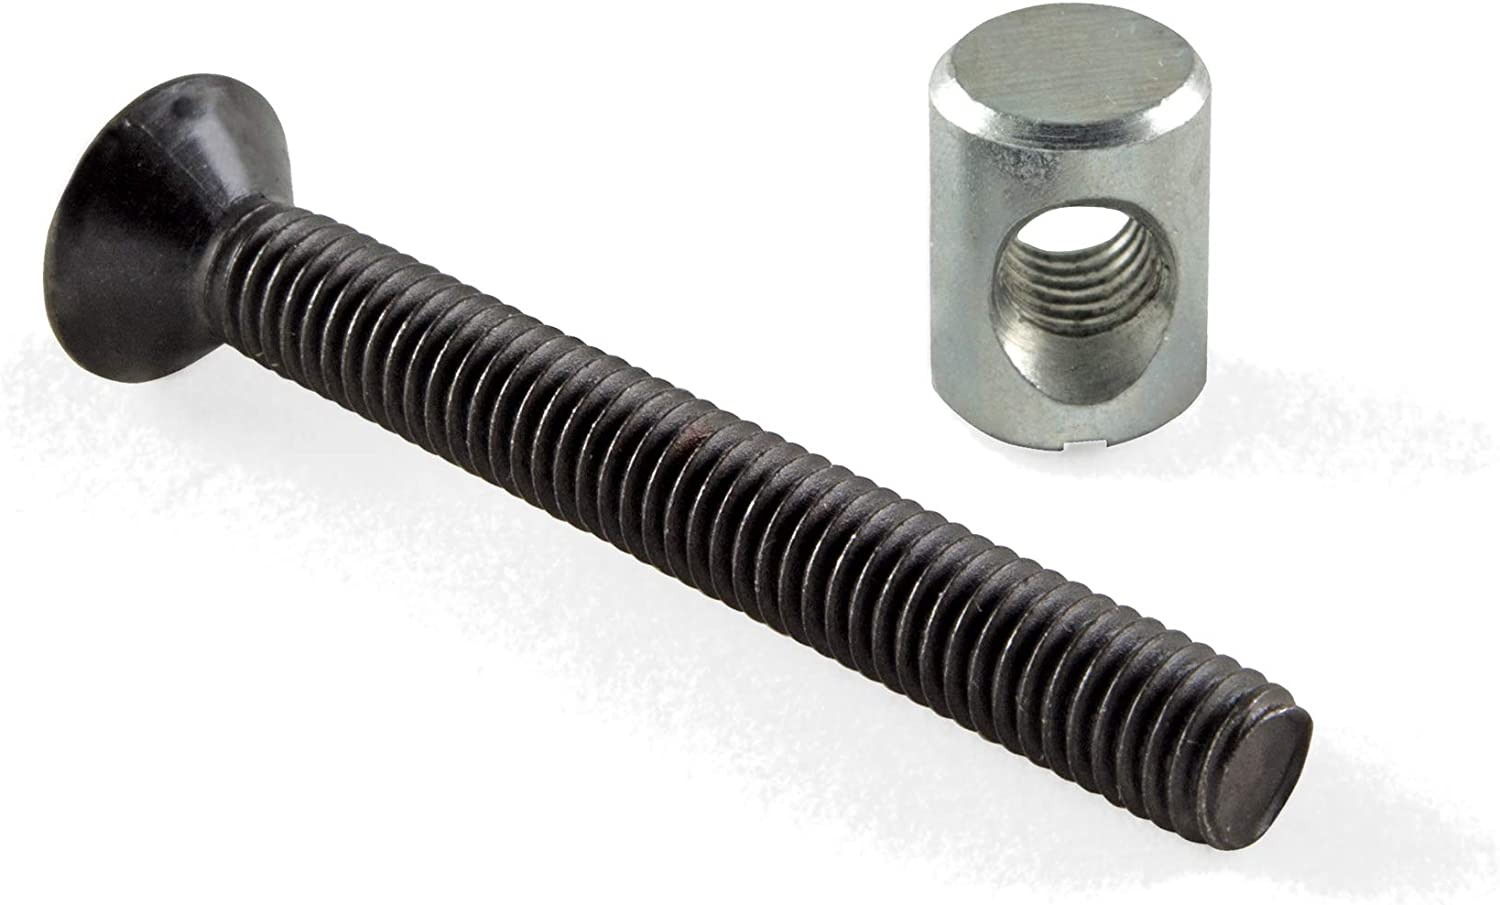 8 Pieces Mobila RS00506 6 x 70mm Connection Screw